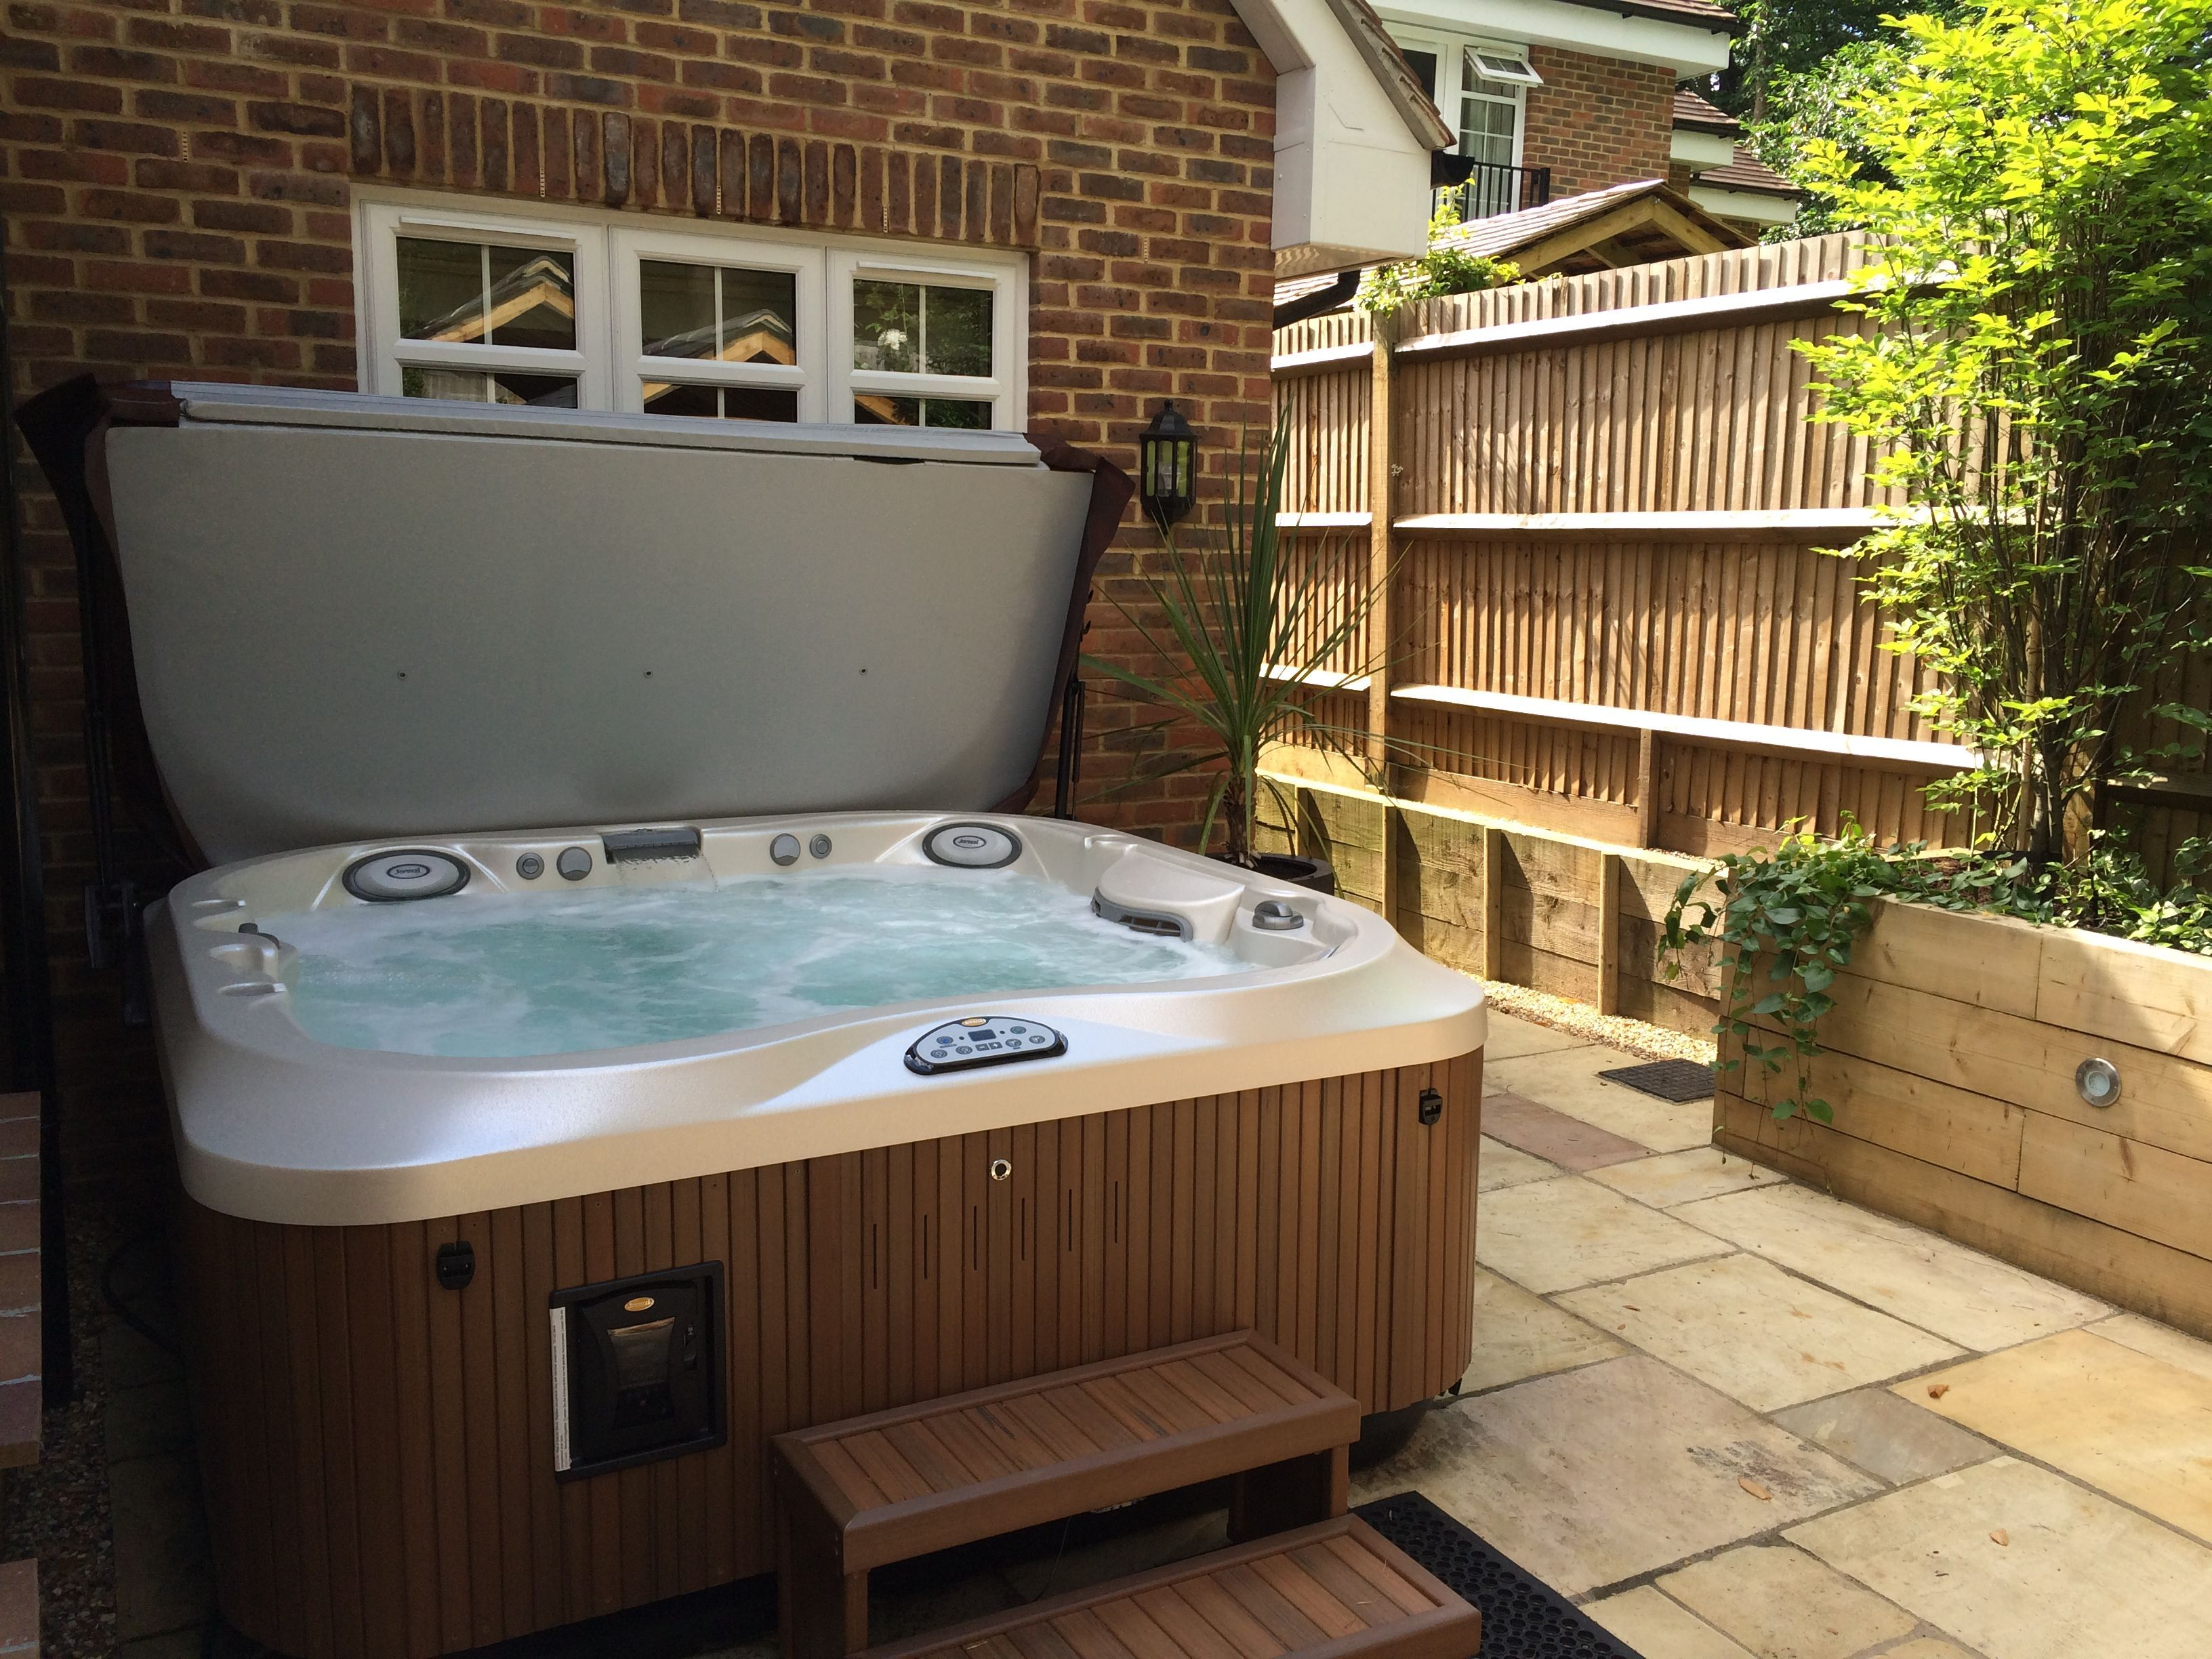 ucwe are extremely delighted with our jacuzzi we use it every night it has been a pleasure buying from jacuzzi longacres customer service has beeu